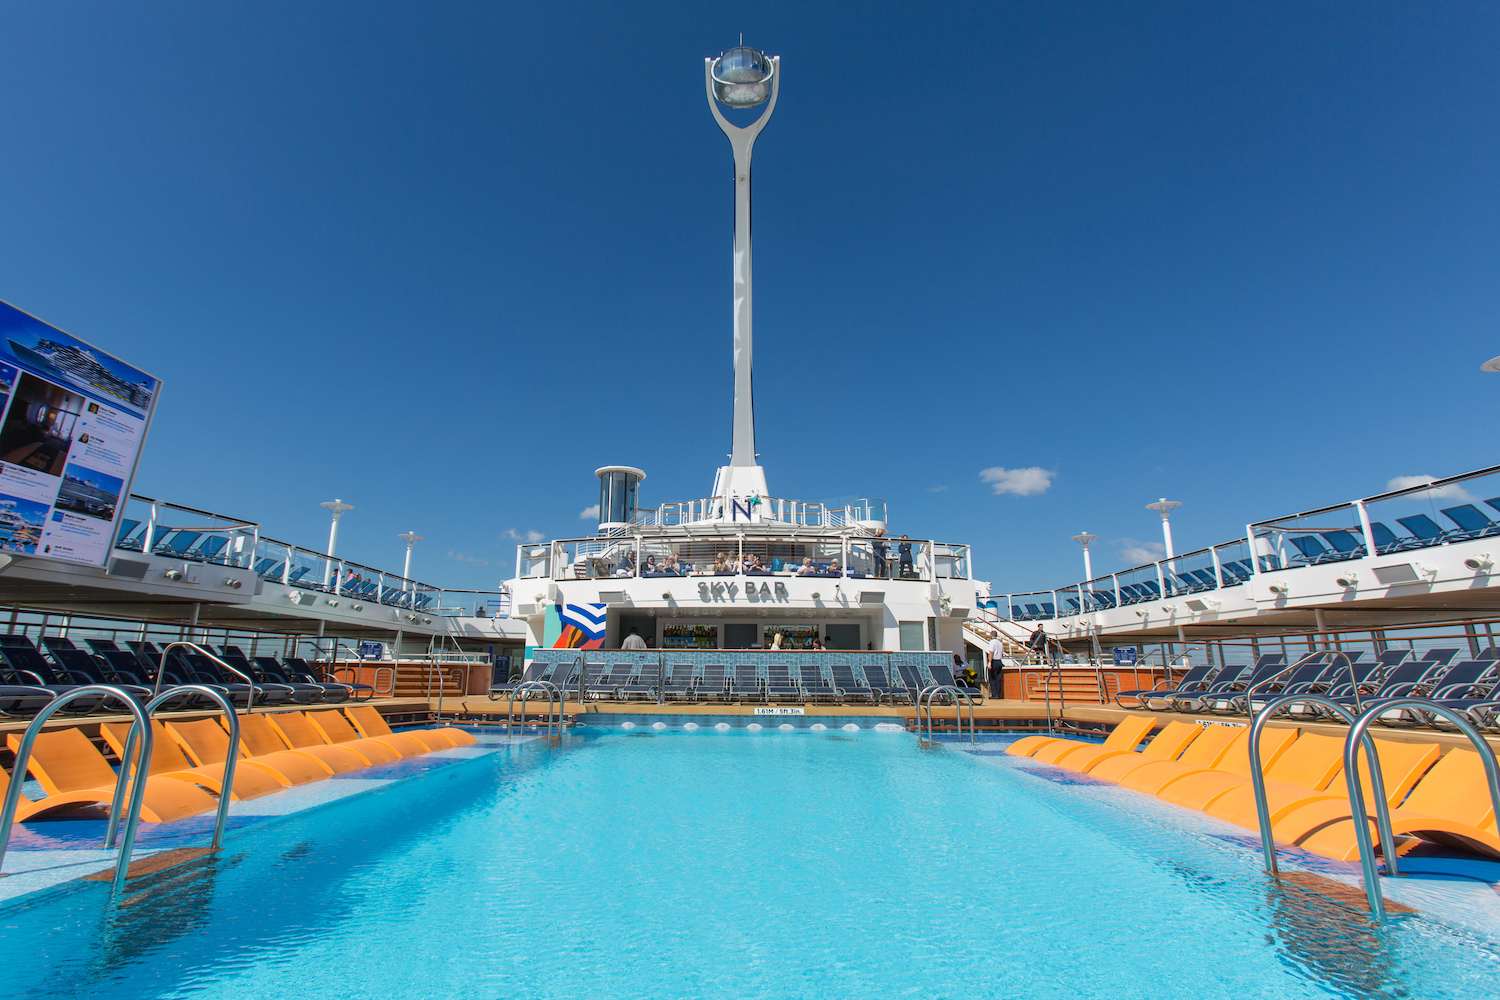 The Pool Deck and North Star